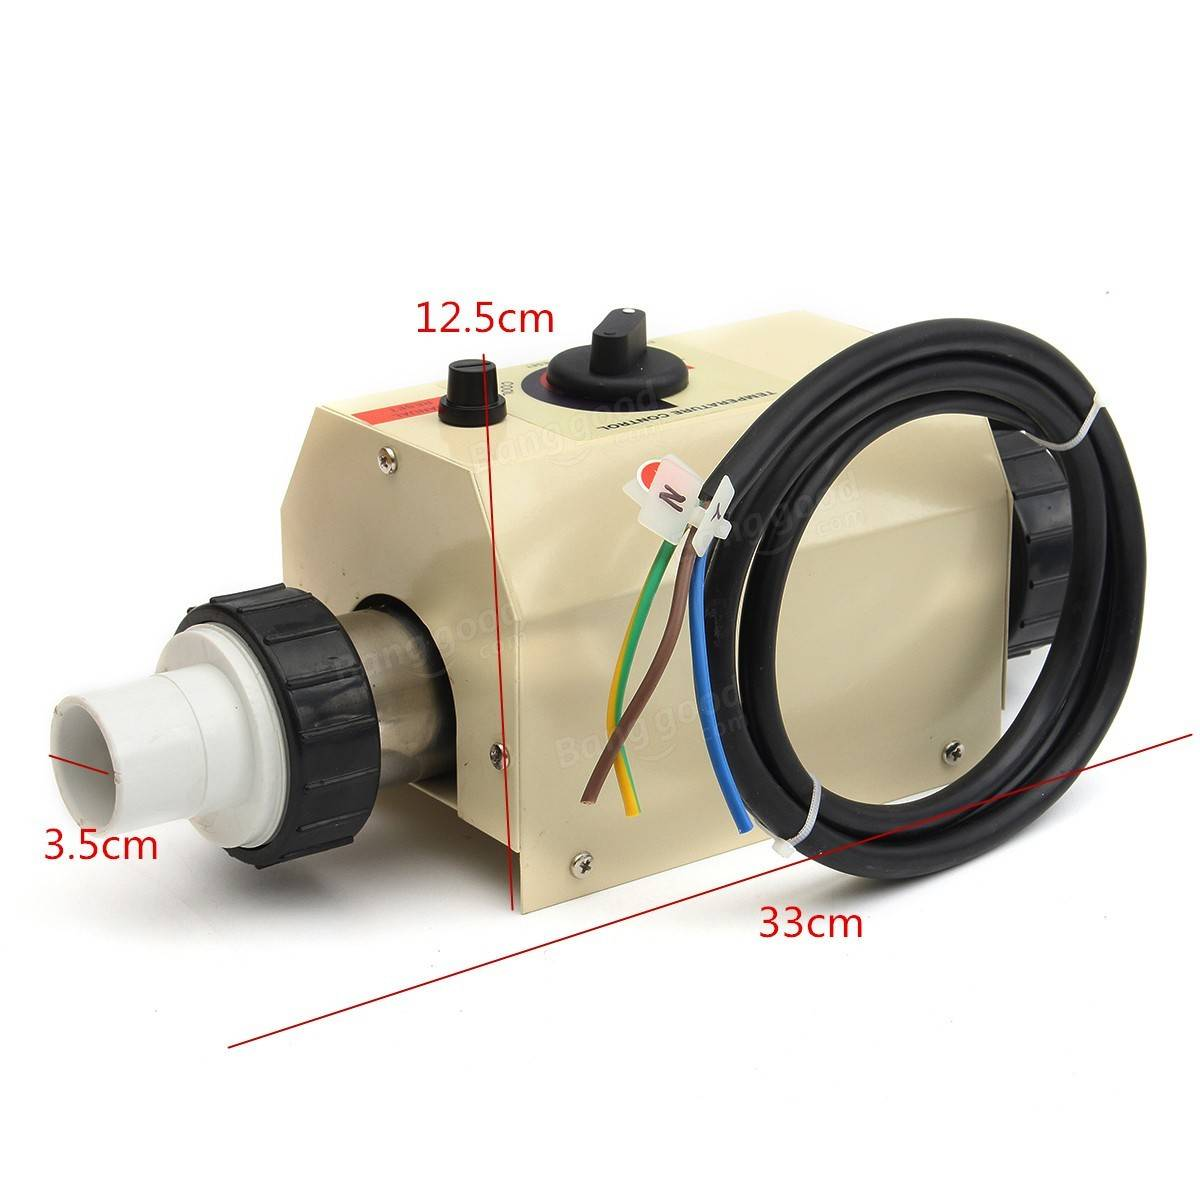 2kw 220v piscine et spa chauffe eau thermostat de for Thermostat piscine